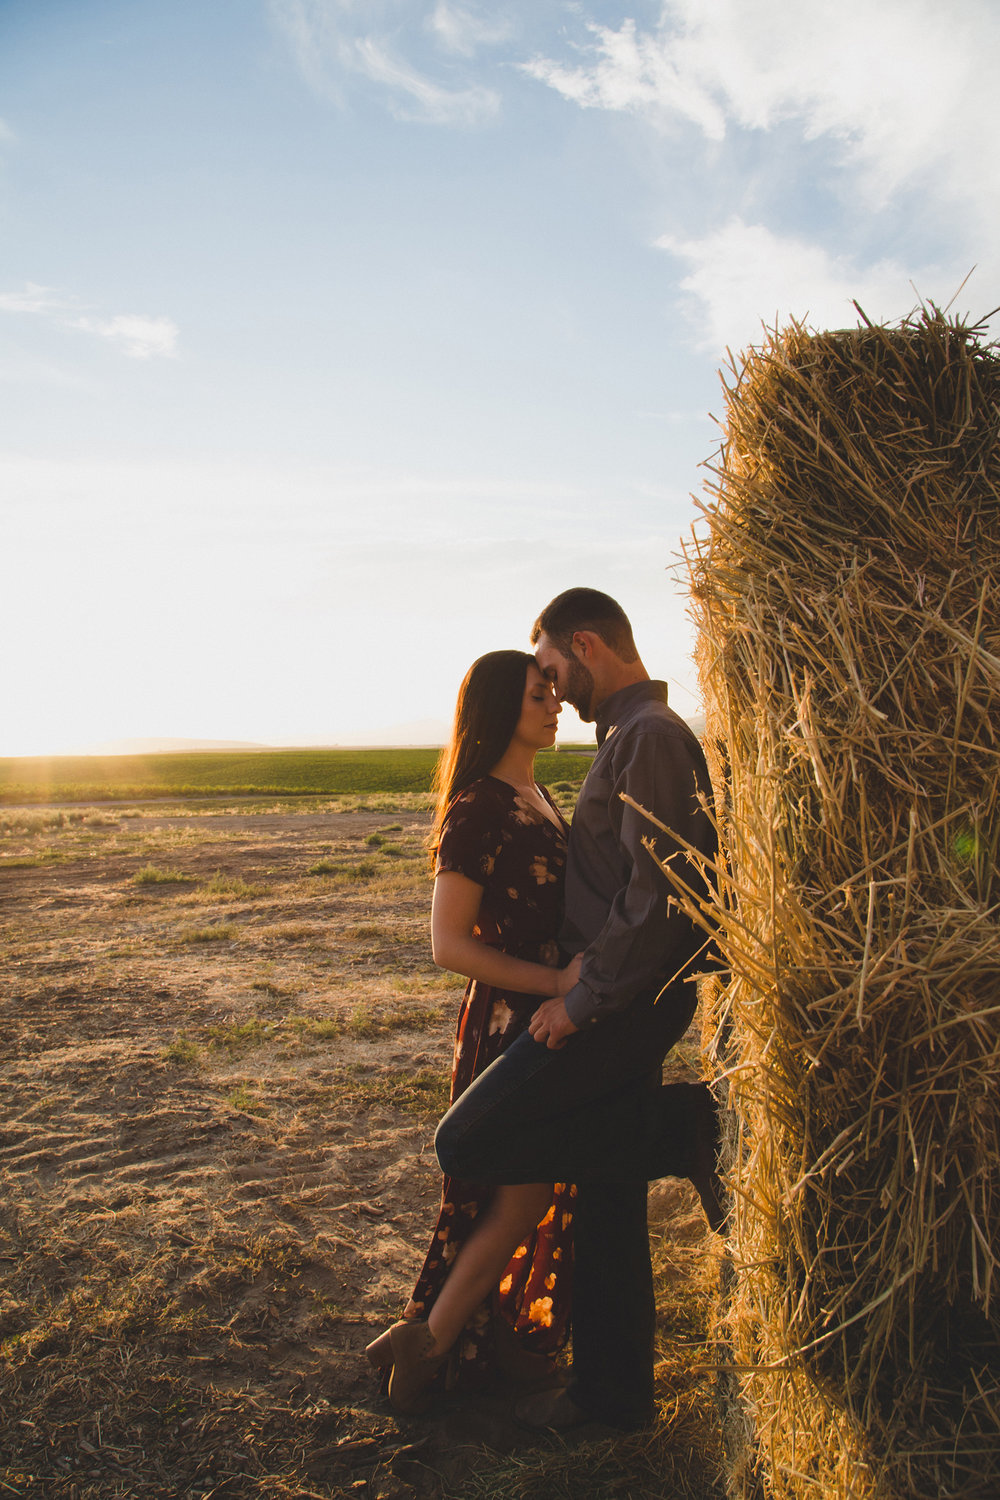 Tri cities engagement photographer_tri cities_engagement_tri cities wedding photographer_engagement photos_Kennewick_richland_wedding wednesday_Jordan Edens Photography_7